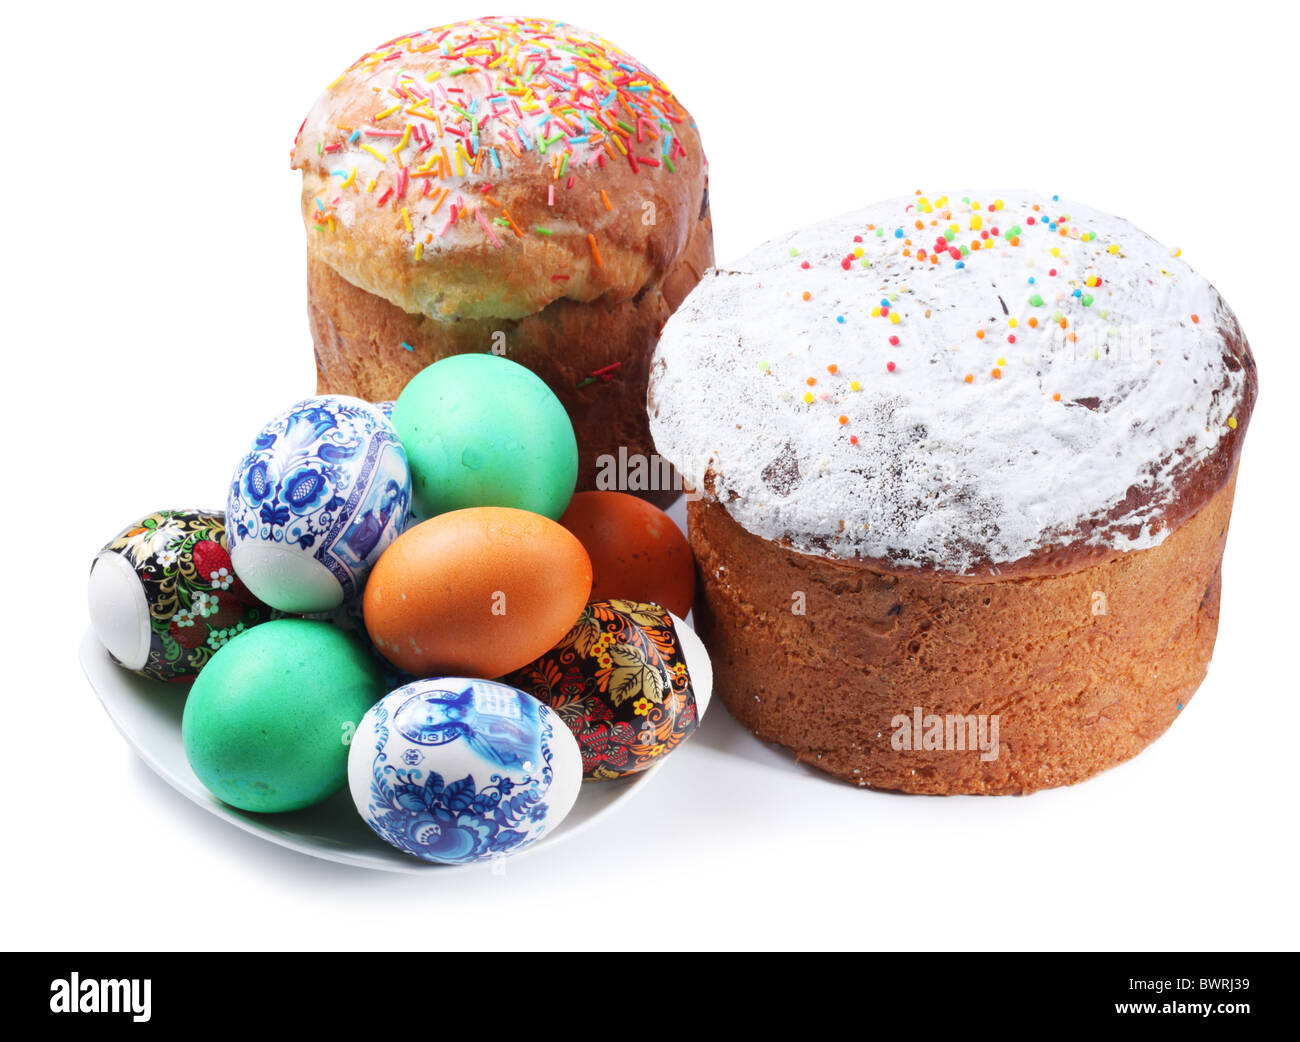 Multi-colored eggs on a plate and cakes. Easter holiday. Isolated on a white - Stock Image